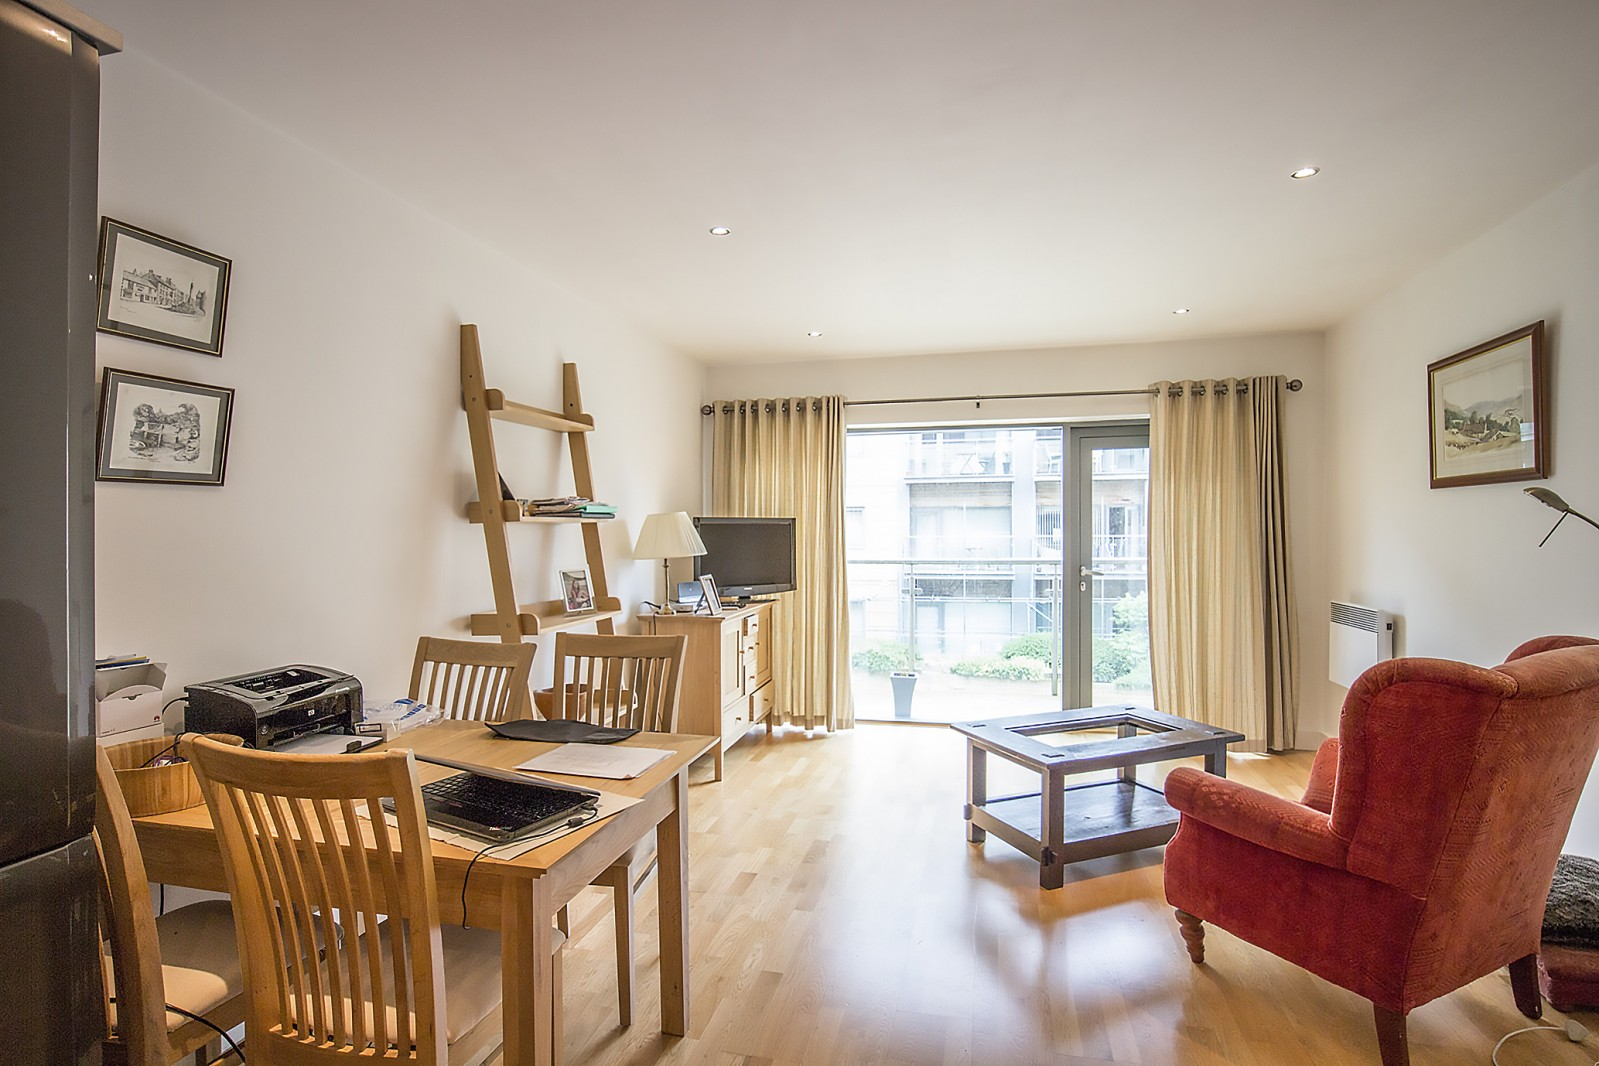 Is 747 A Good Credit Score >> 1 bedroom apartment for sale, Grove Park Oval, Newcastle Upon Tyne, NE3 1EG